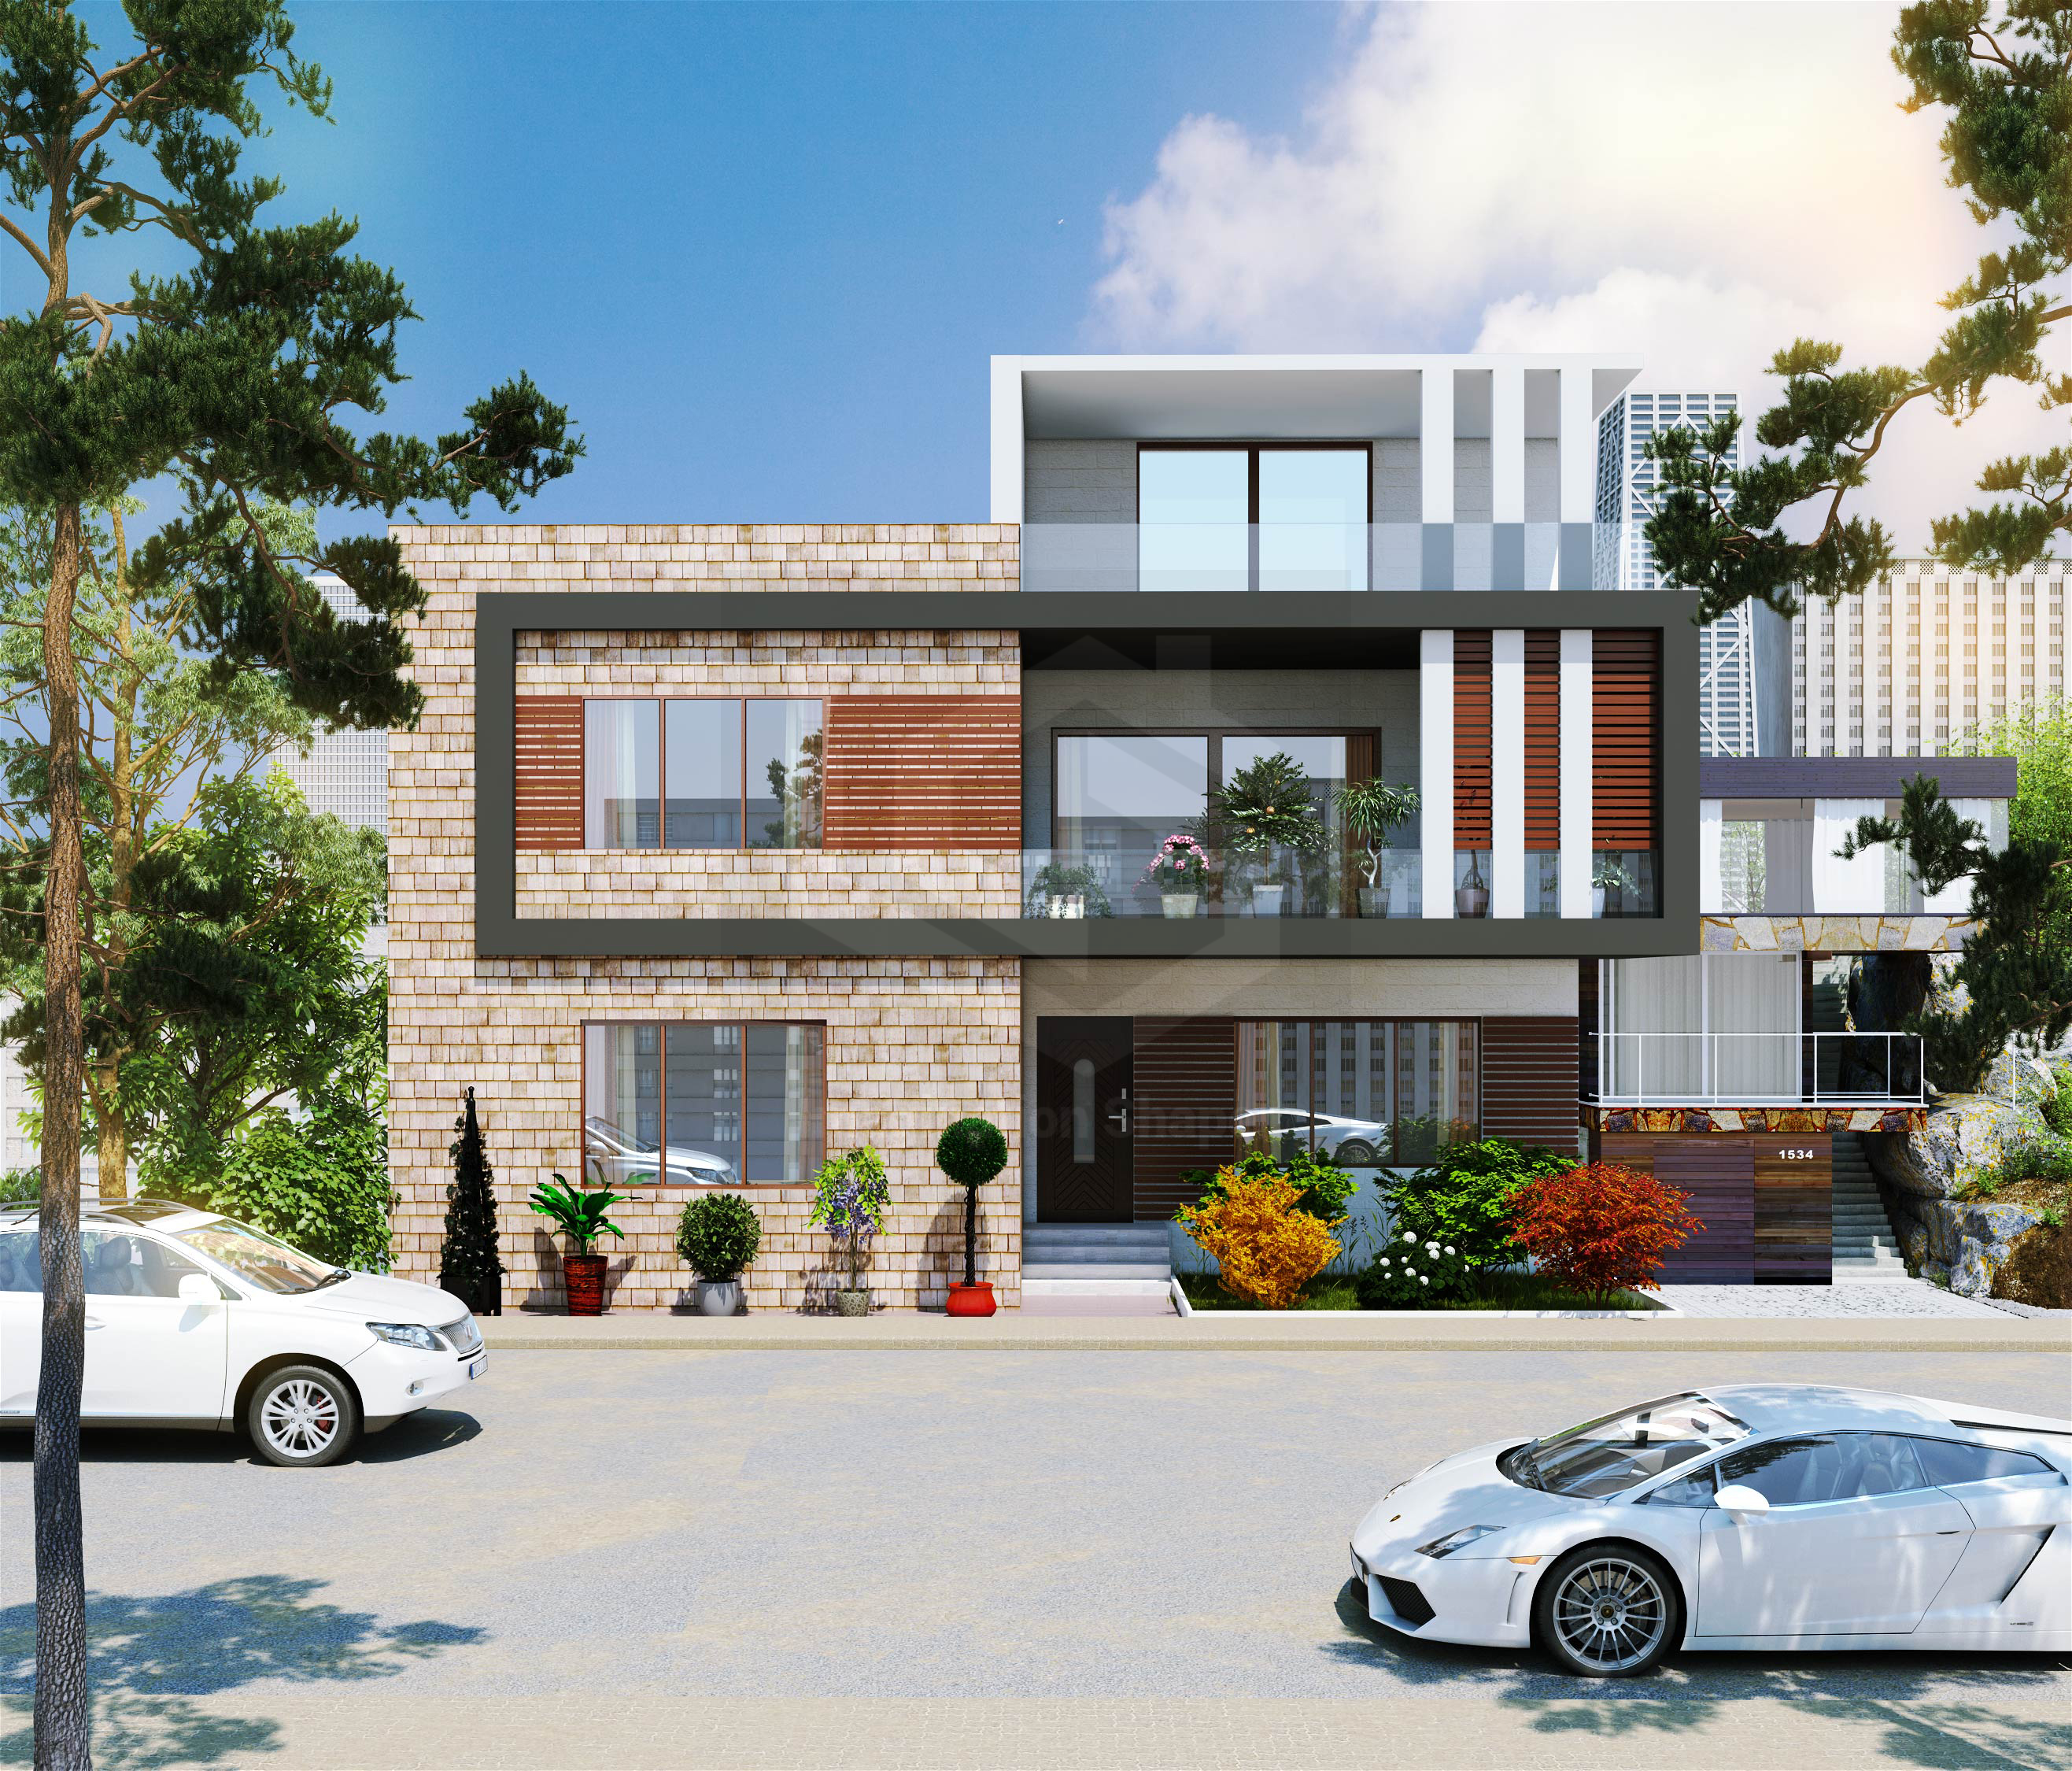 Front Elevation Design Ideas From Architects In Jaipur: Duplex Residential Front Elevation